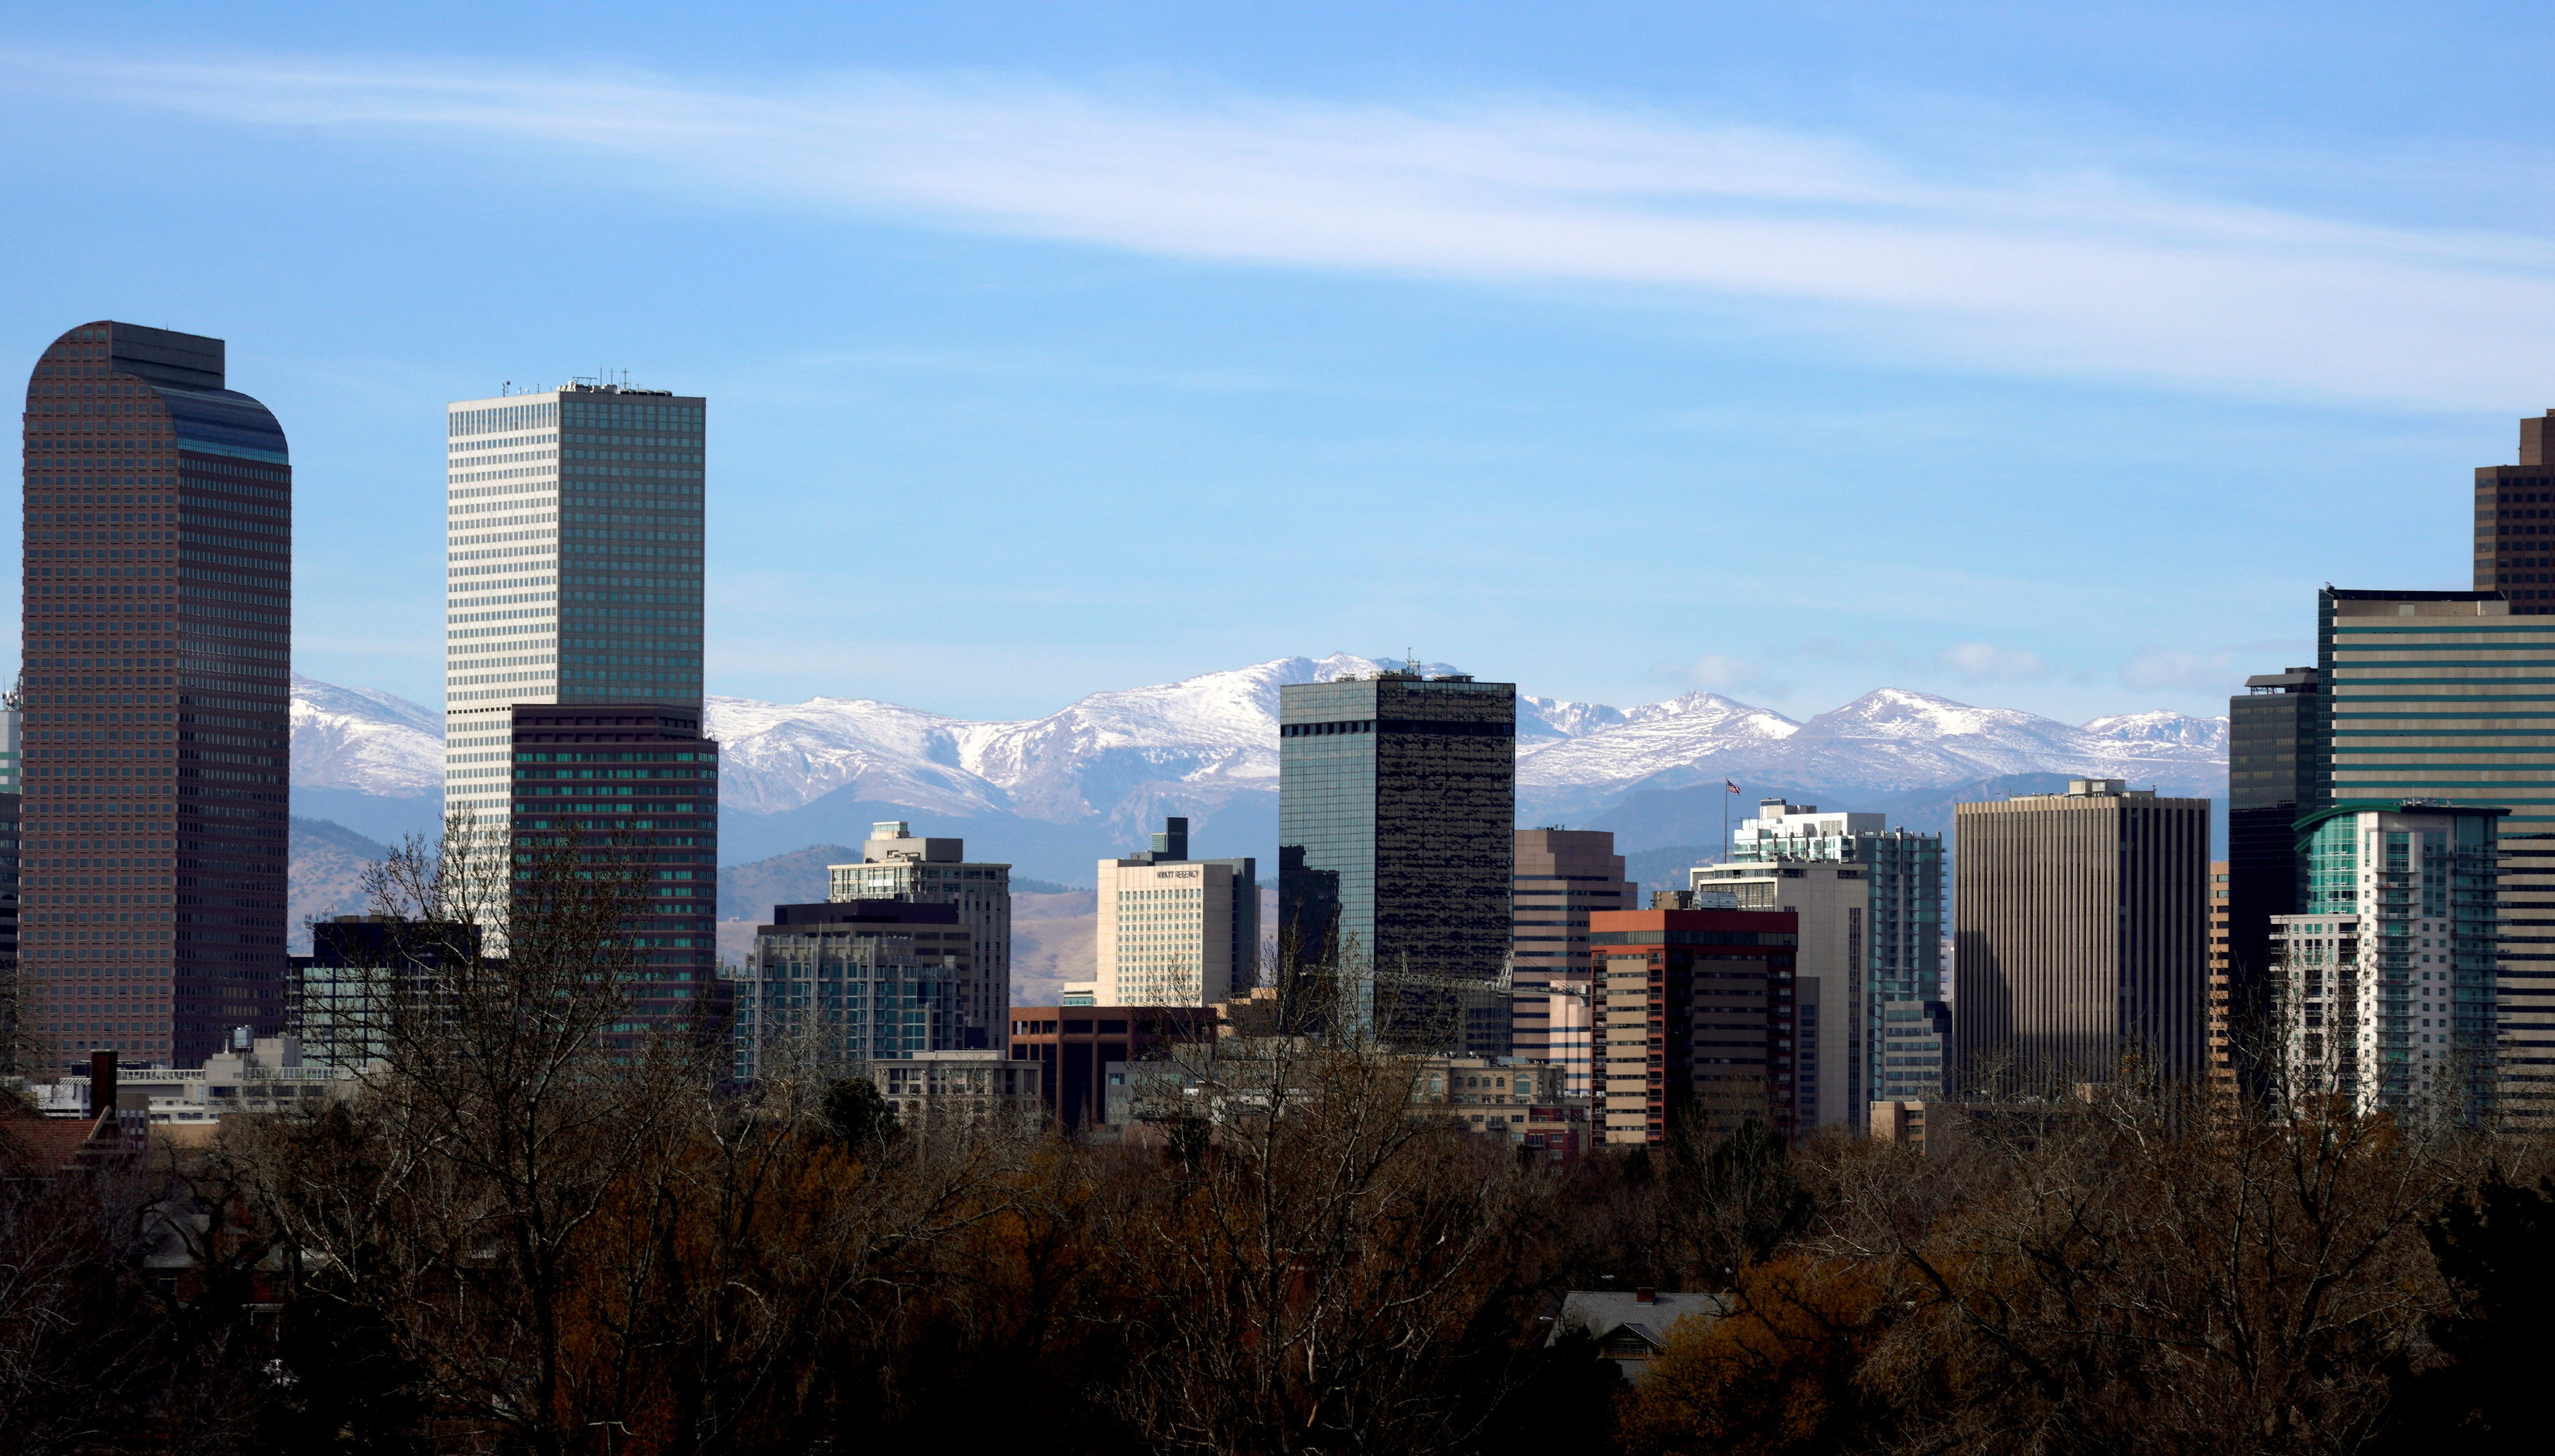 The Continental Divide is seen in the background behind the downtown city skyline in Denver, Colorado, U.S., November 16, 2017. REUTERS/Rick Wilking